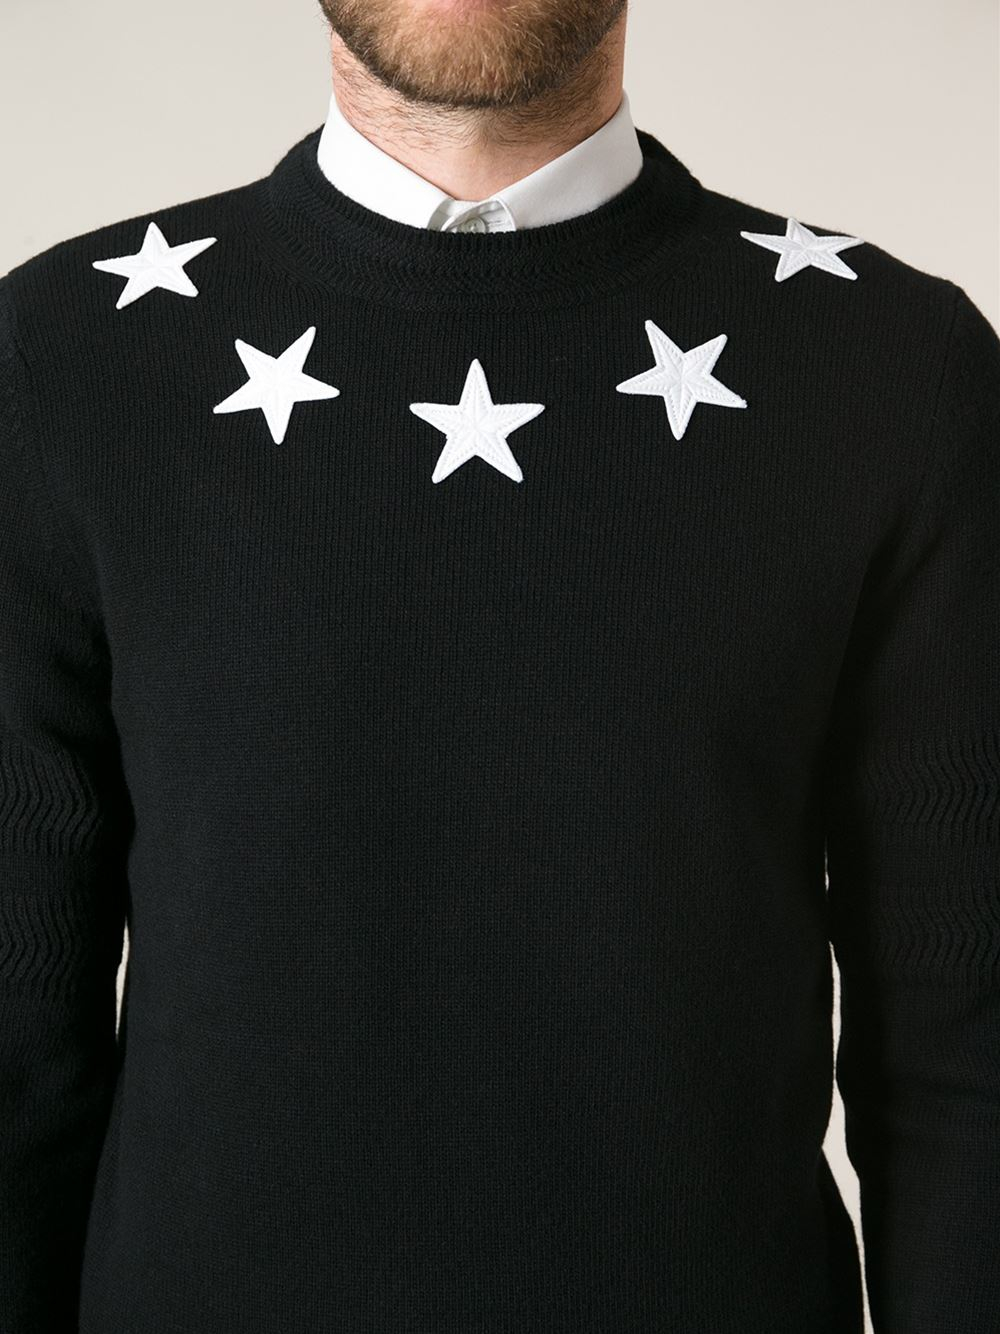 Ralph Lauren Zipper Sweater